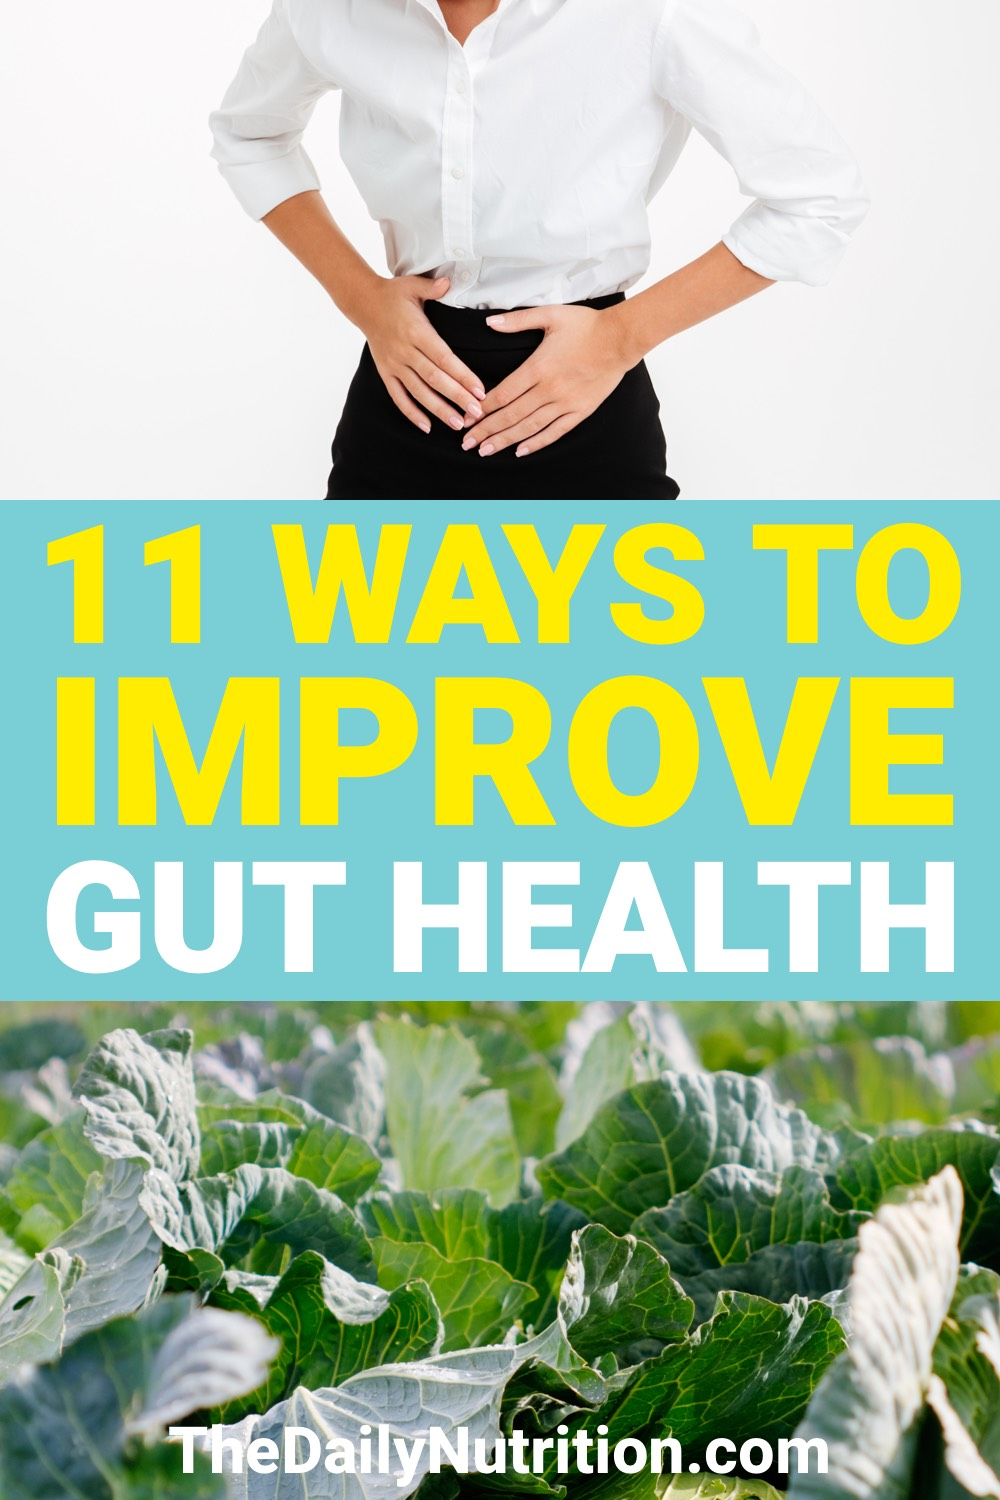 Your gut health is very important. Here are 11 ways that you can improve your gut health.